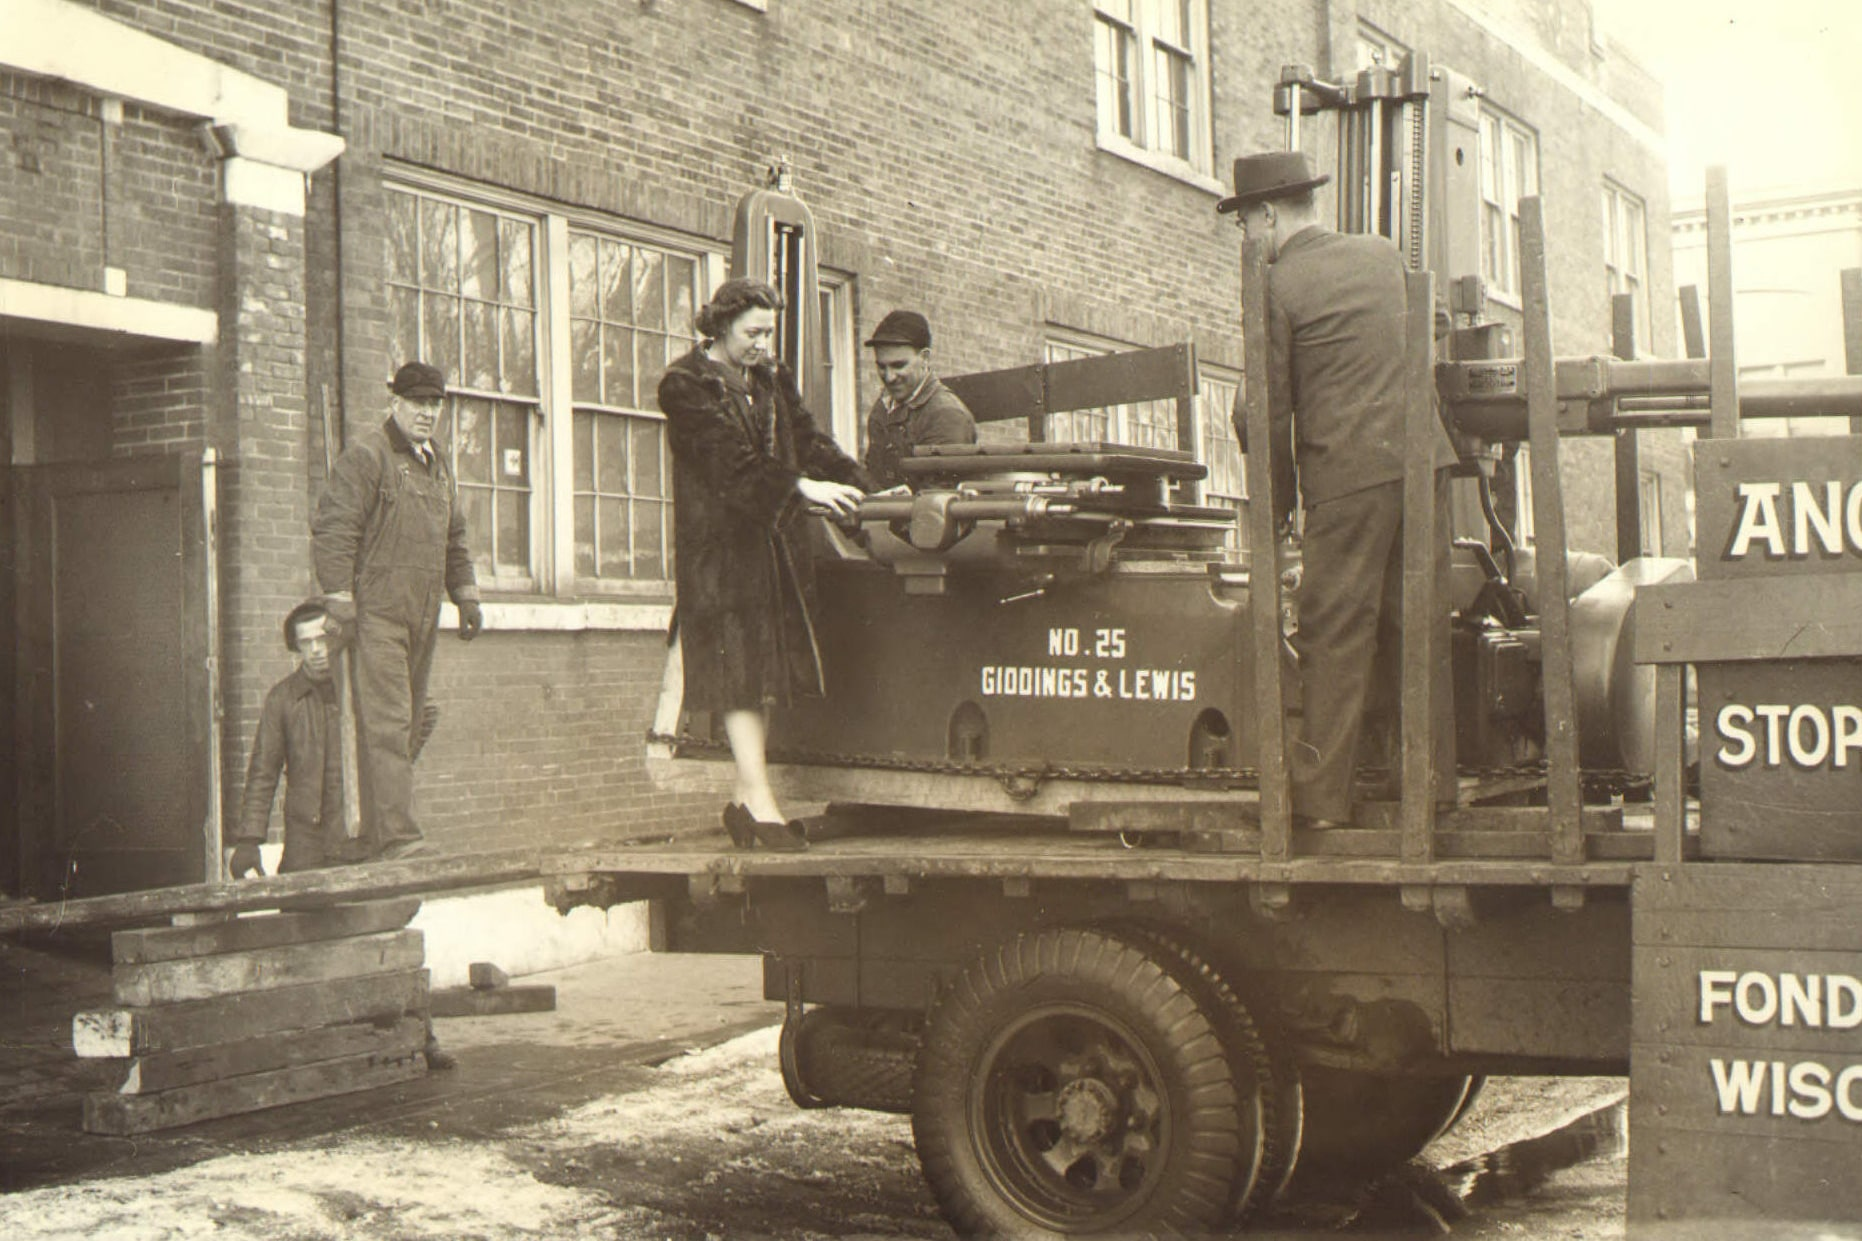 Vintage black and white photo of truck and people by Giddings and Lewis